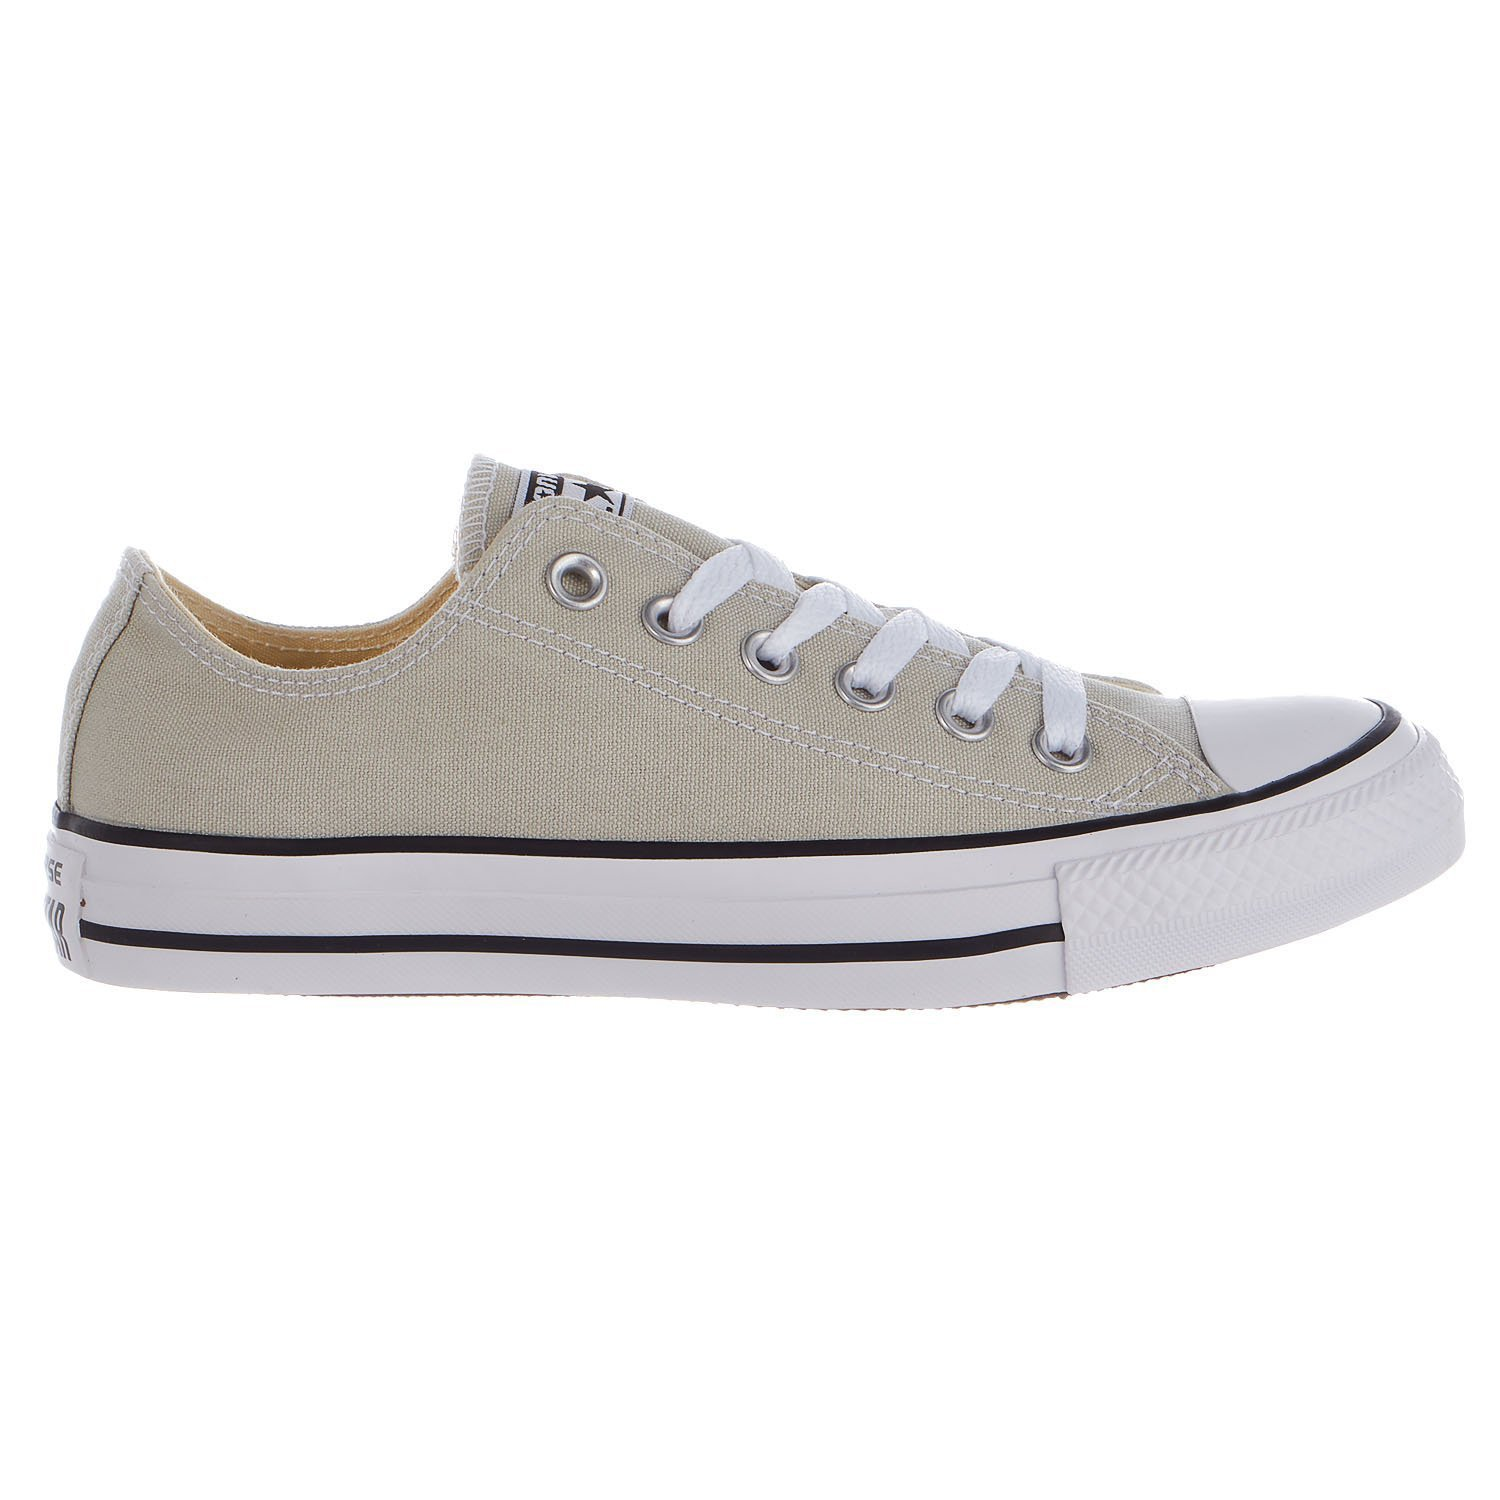 9980af2f346a54 Galleon - Converse Unisex Chuck Taylor All Star Low Top Light Surplus  Sneakers - 11 B(M) US Women   9 D(M) US Men